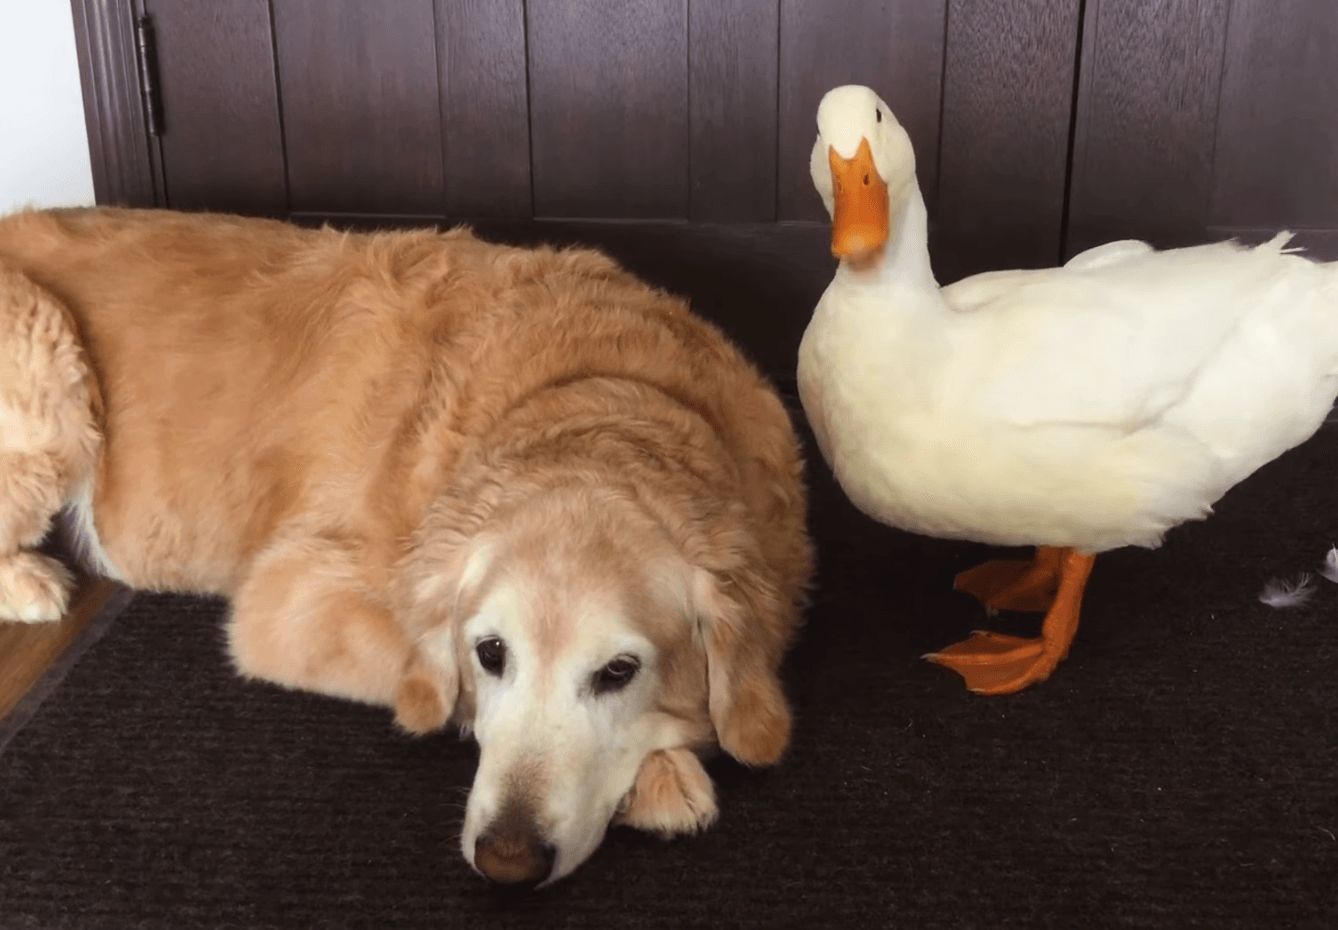 Duck and dog